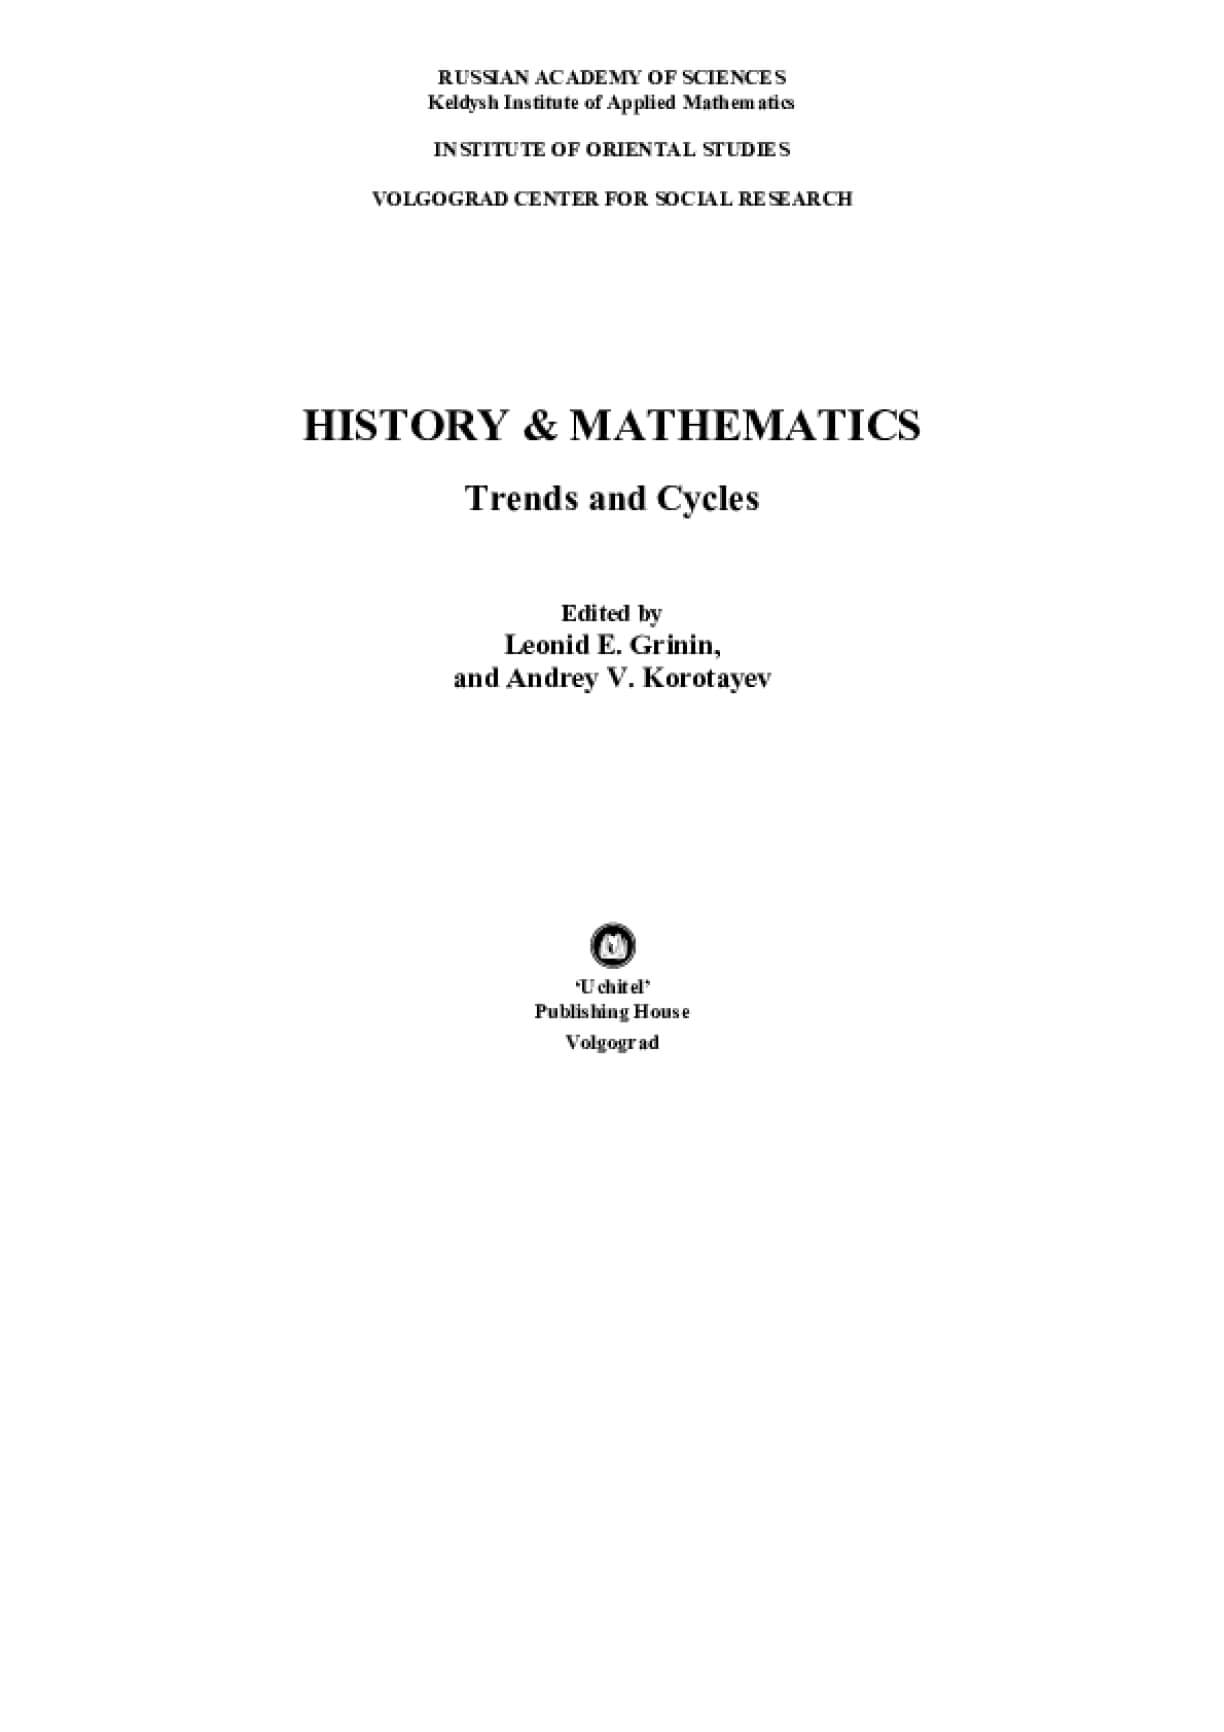 History & Mathematics: Trends and Cycles